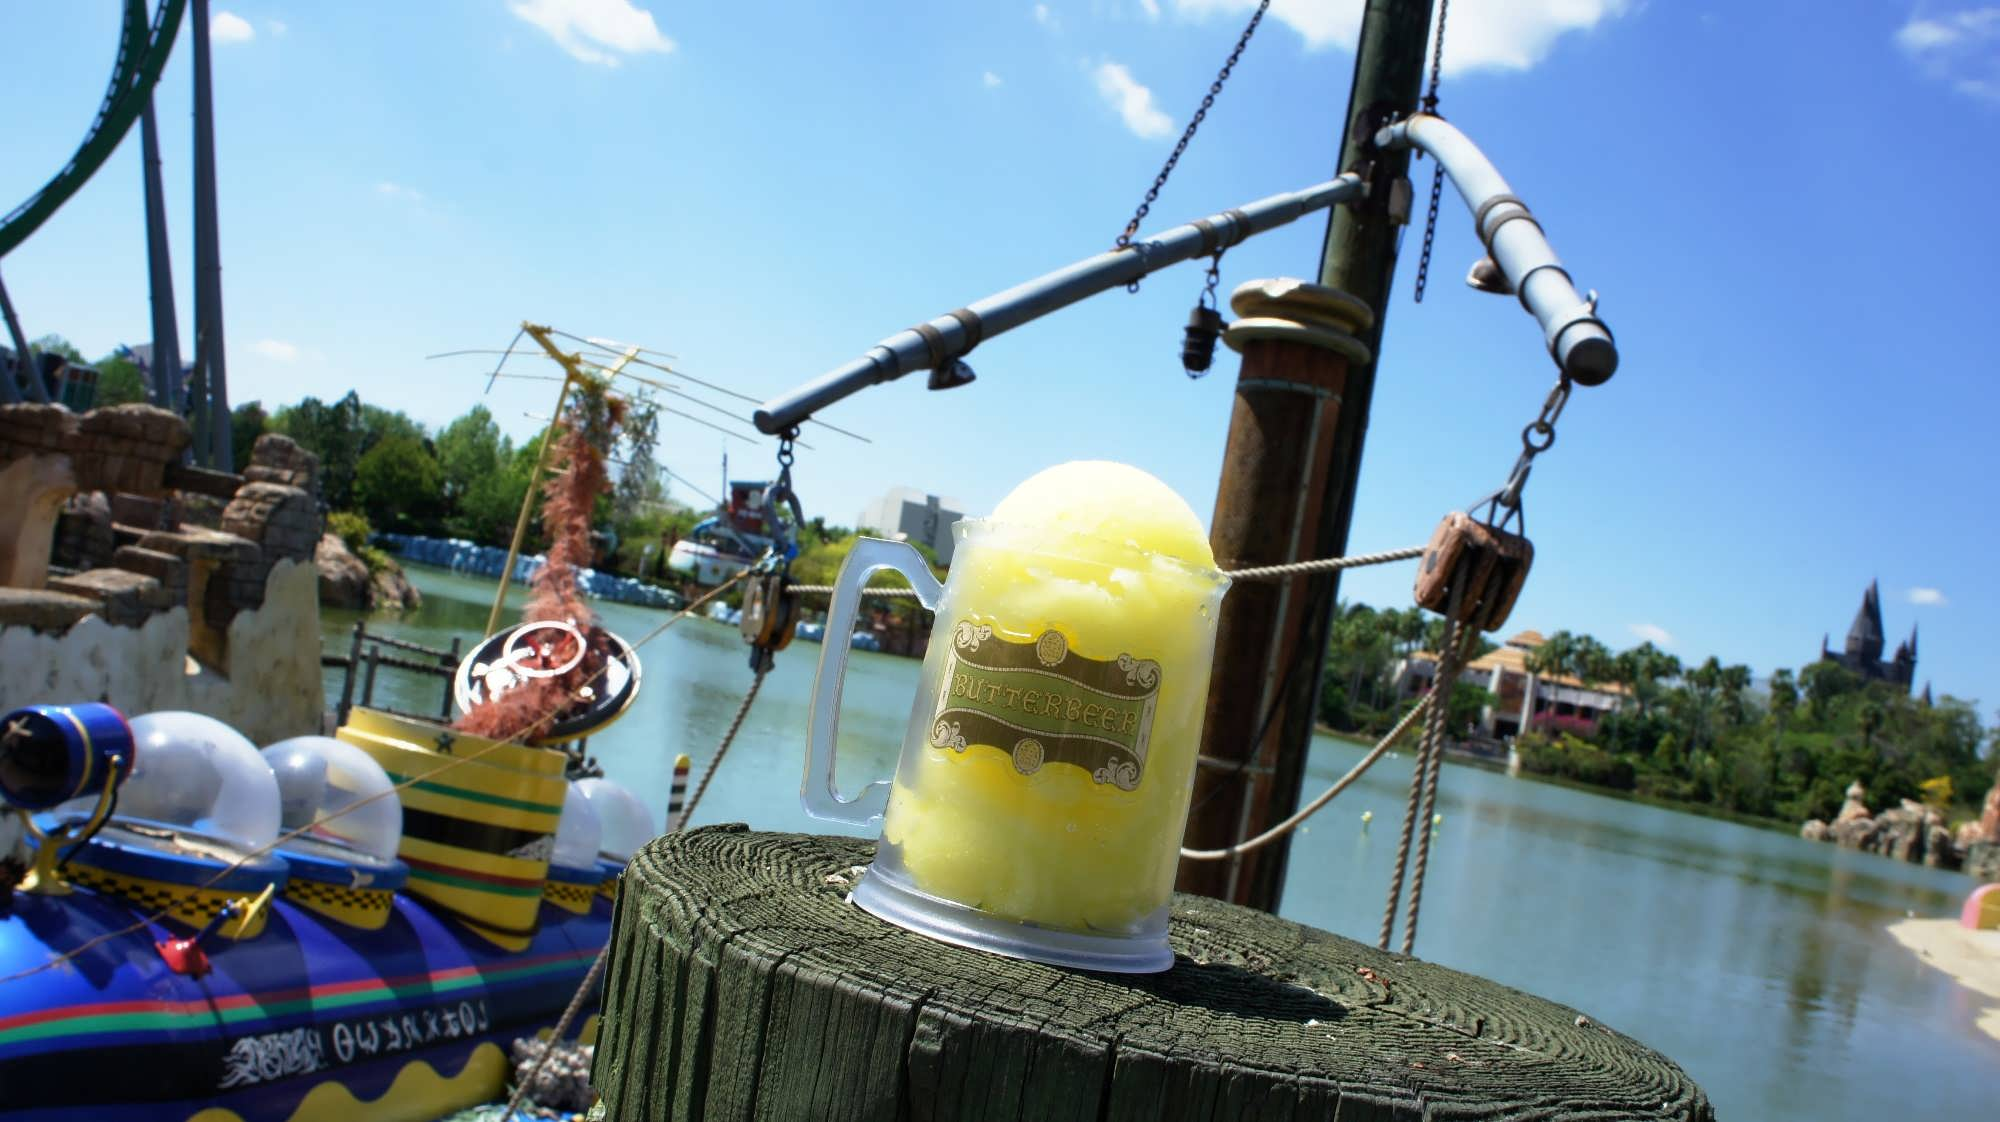 Refillable cups at Universal's Islands of Adventure